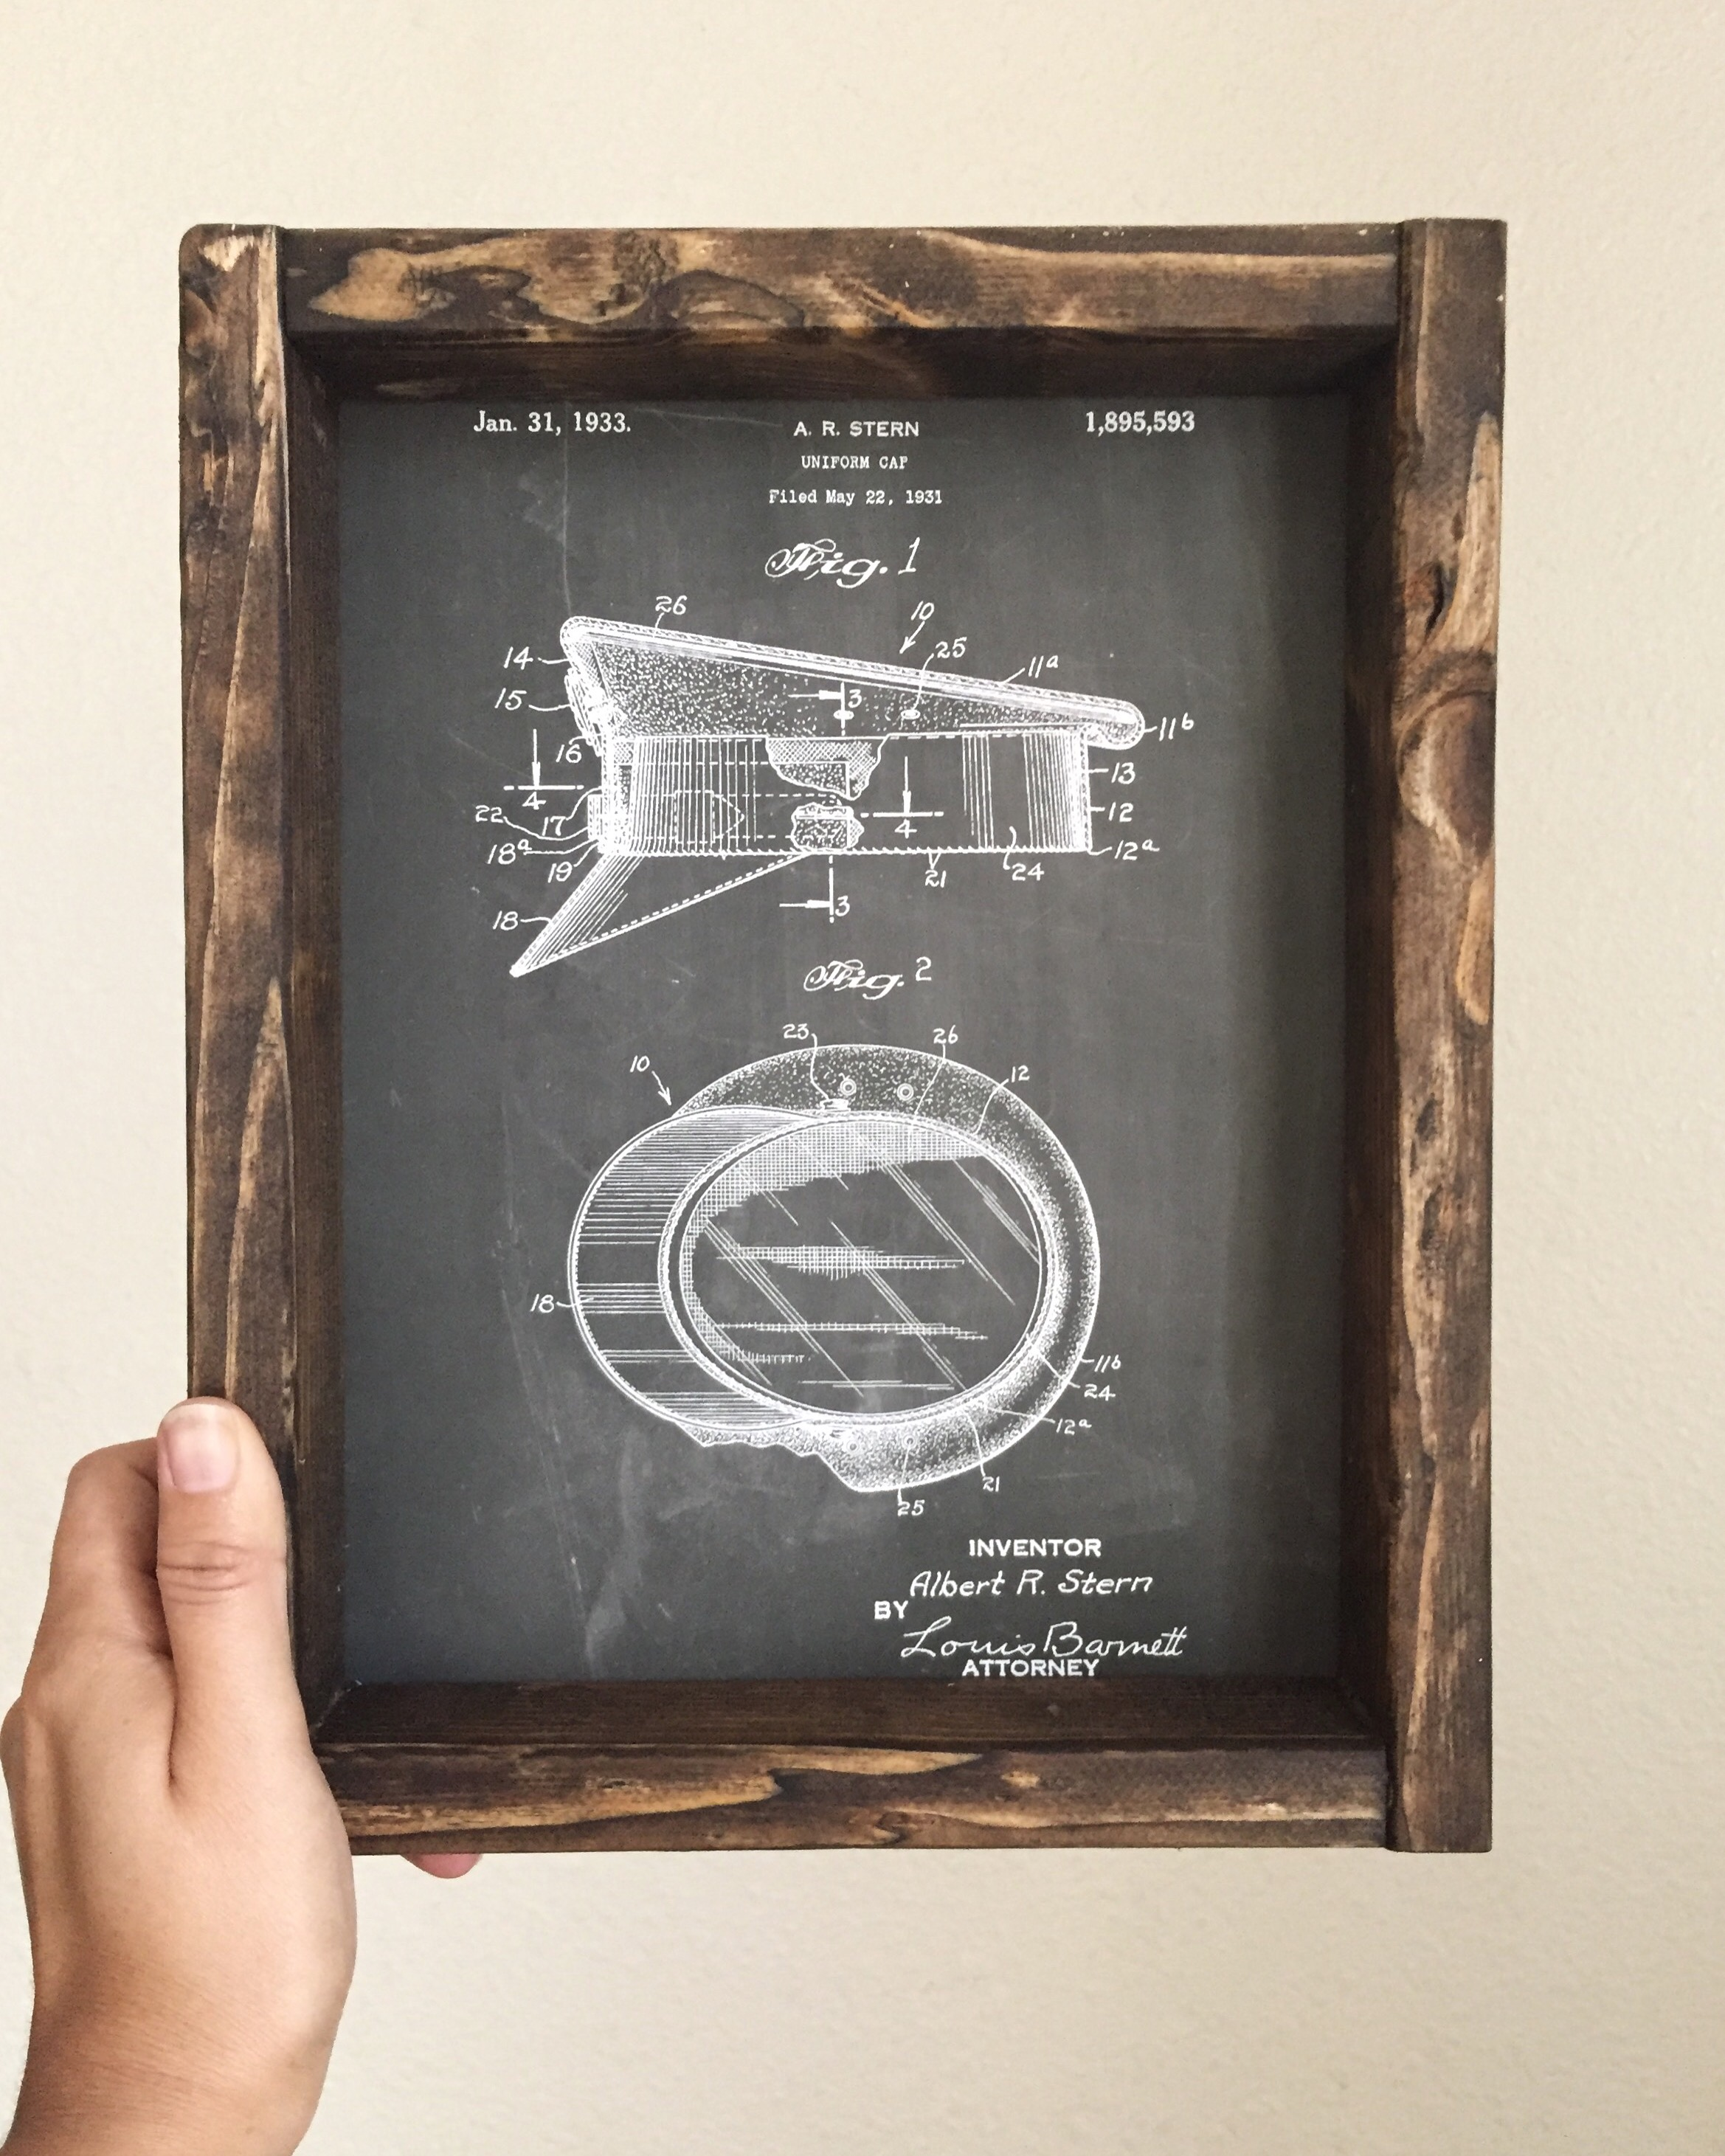 Peachy A Bit This Little Rustic Frame Took An A Common Some Walnut Stain Under It Fits An Print Iordered Built This Rustic Frames Patent Prints photos Rustic Picture Frames